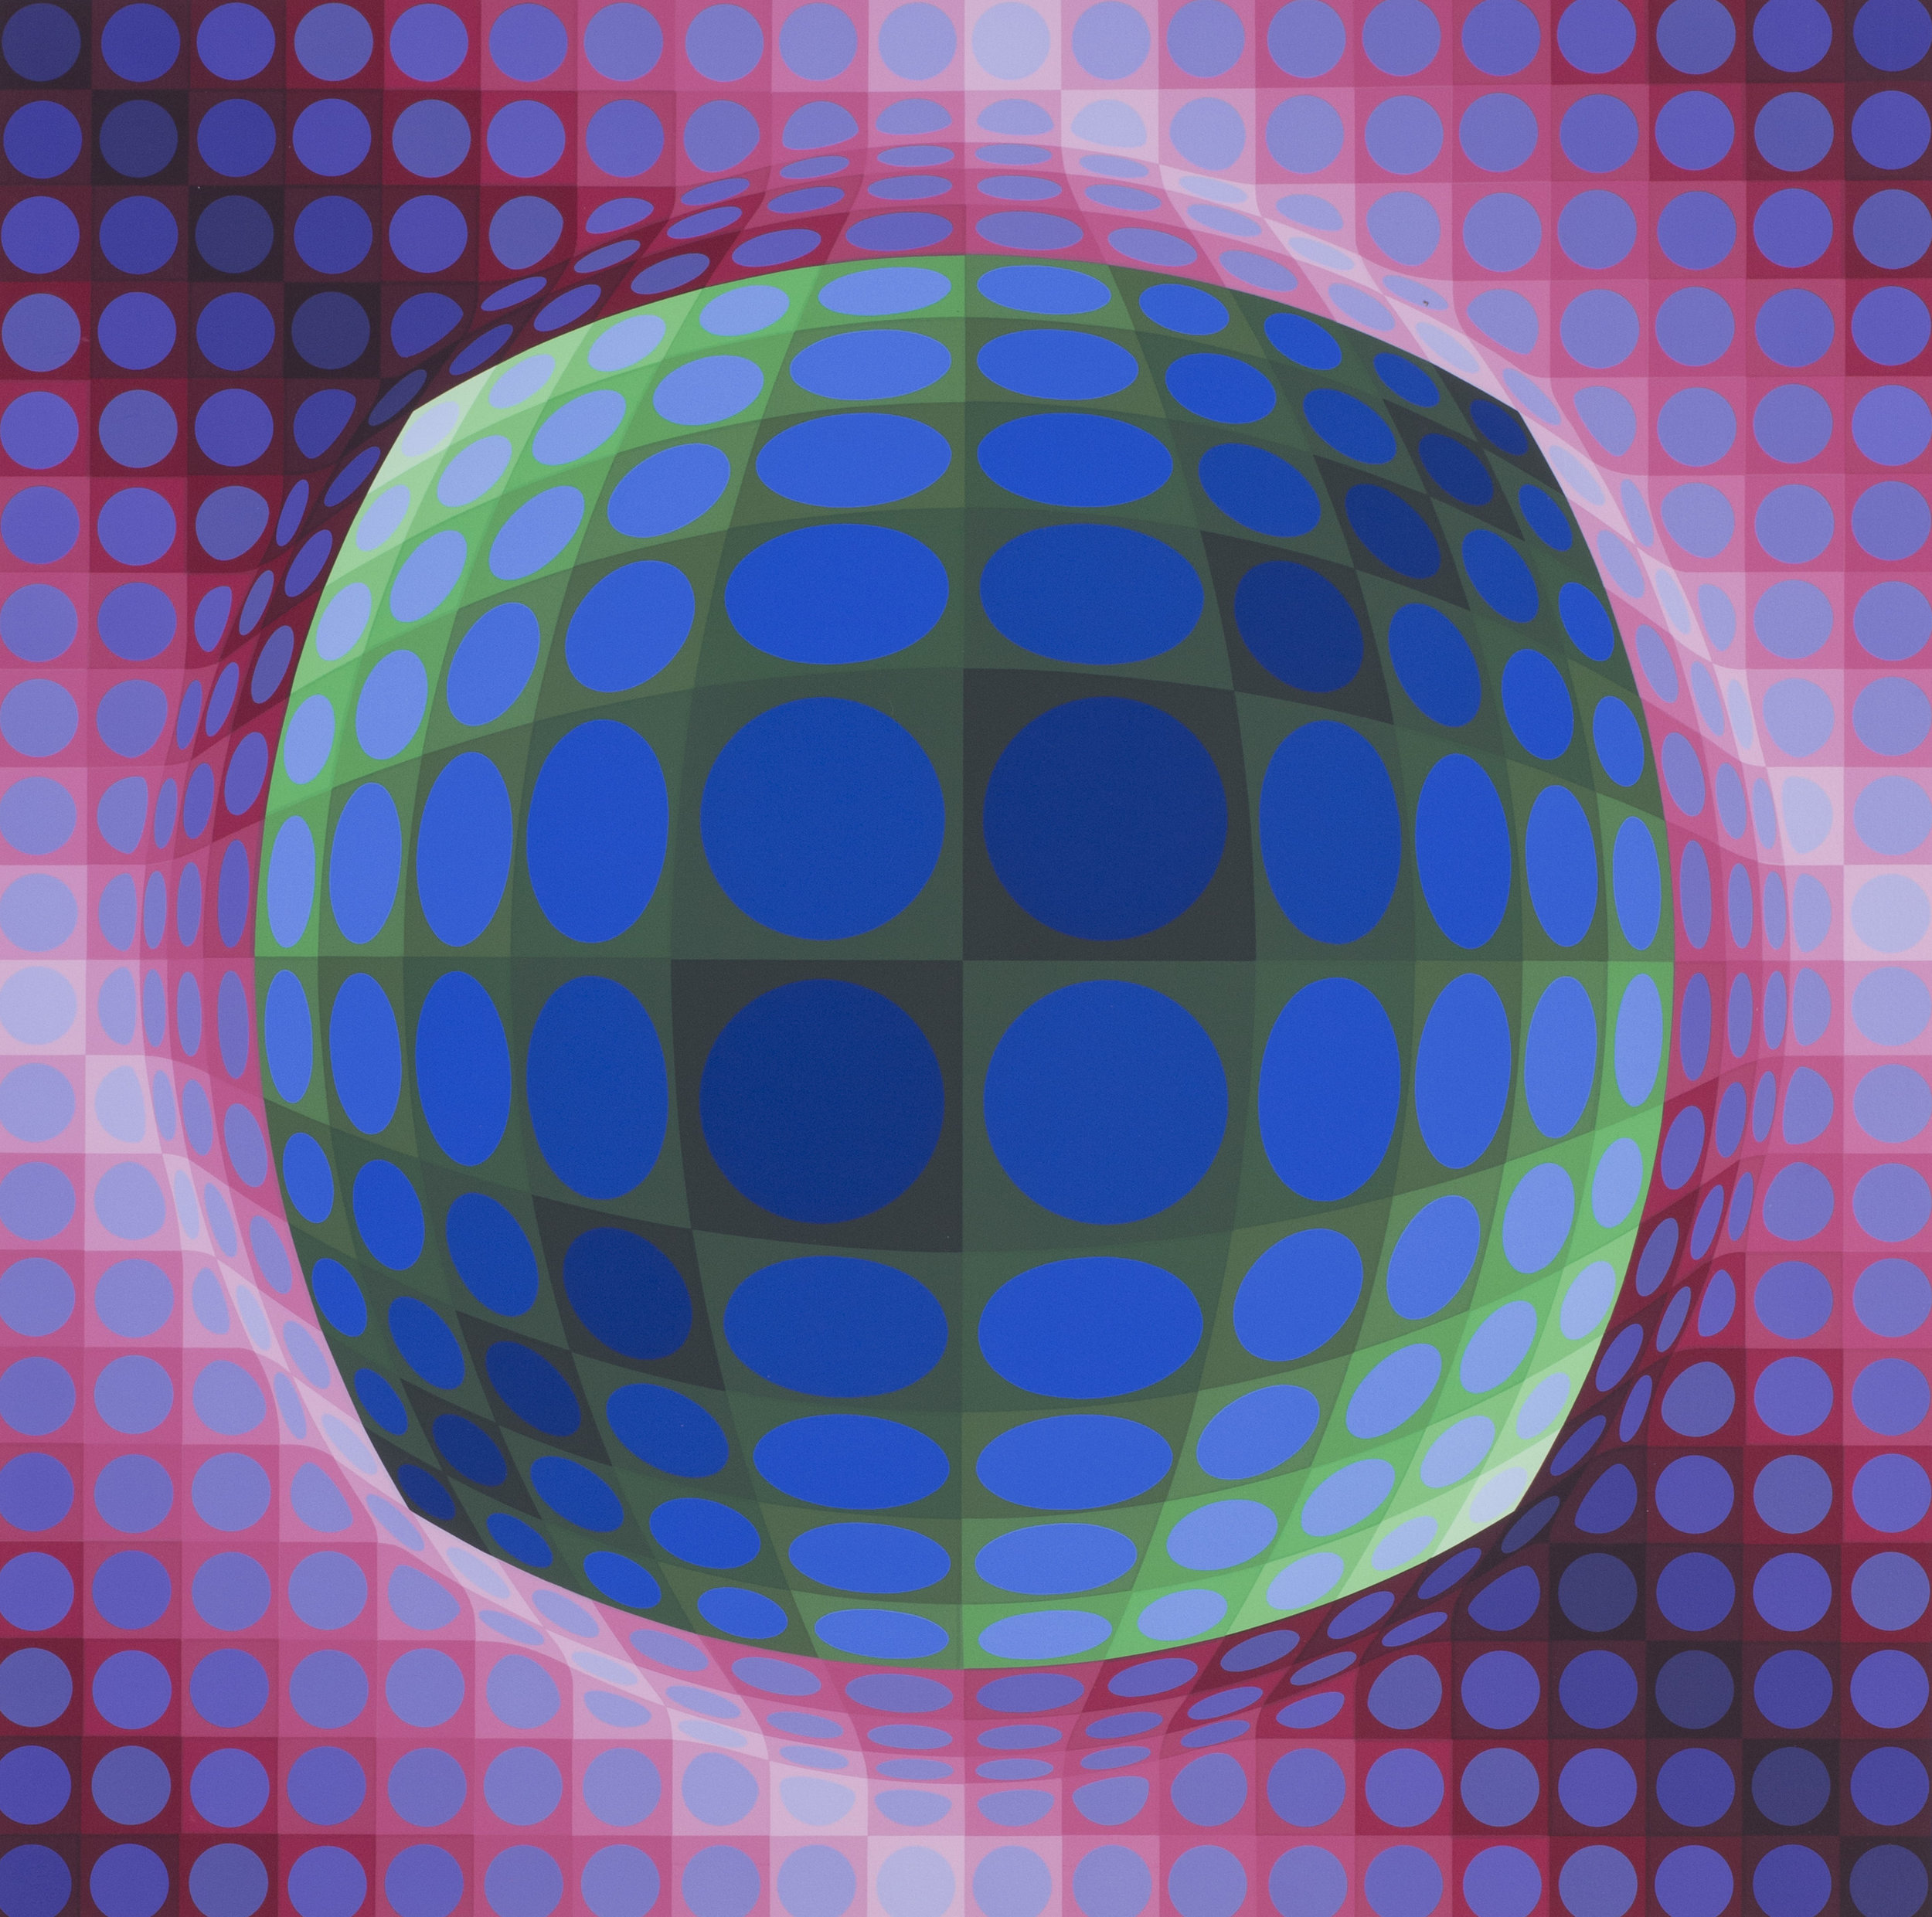 Victor Vasarely   Syry, 1978   Numbered '54/250' and signed 'Vasarely' (lower right)  Screen print  29.1/2 x 29.1/2 in. (75 x 75 cm.) Including margin   SOLD